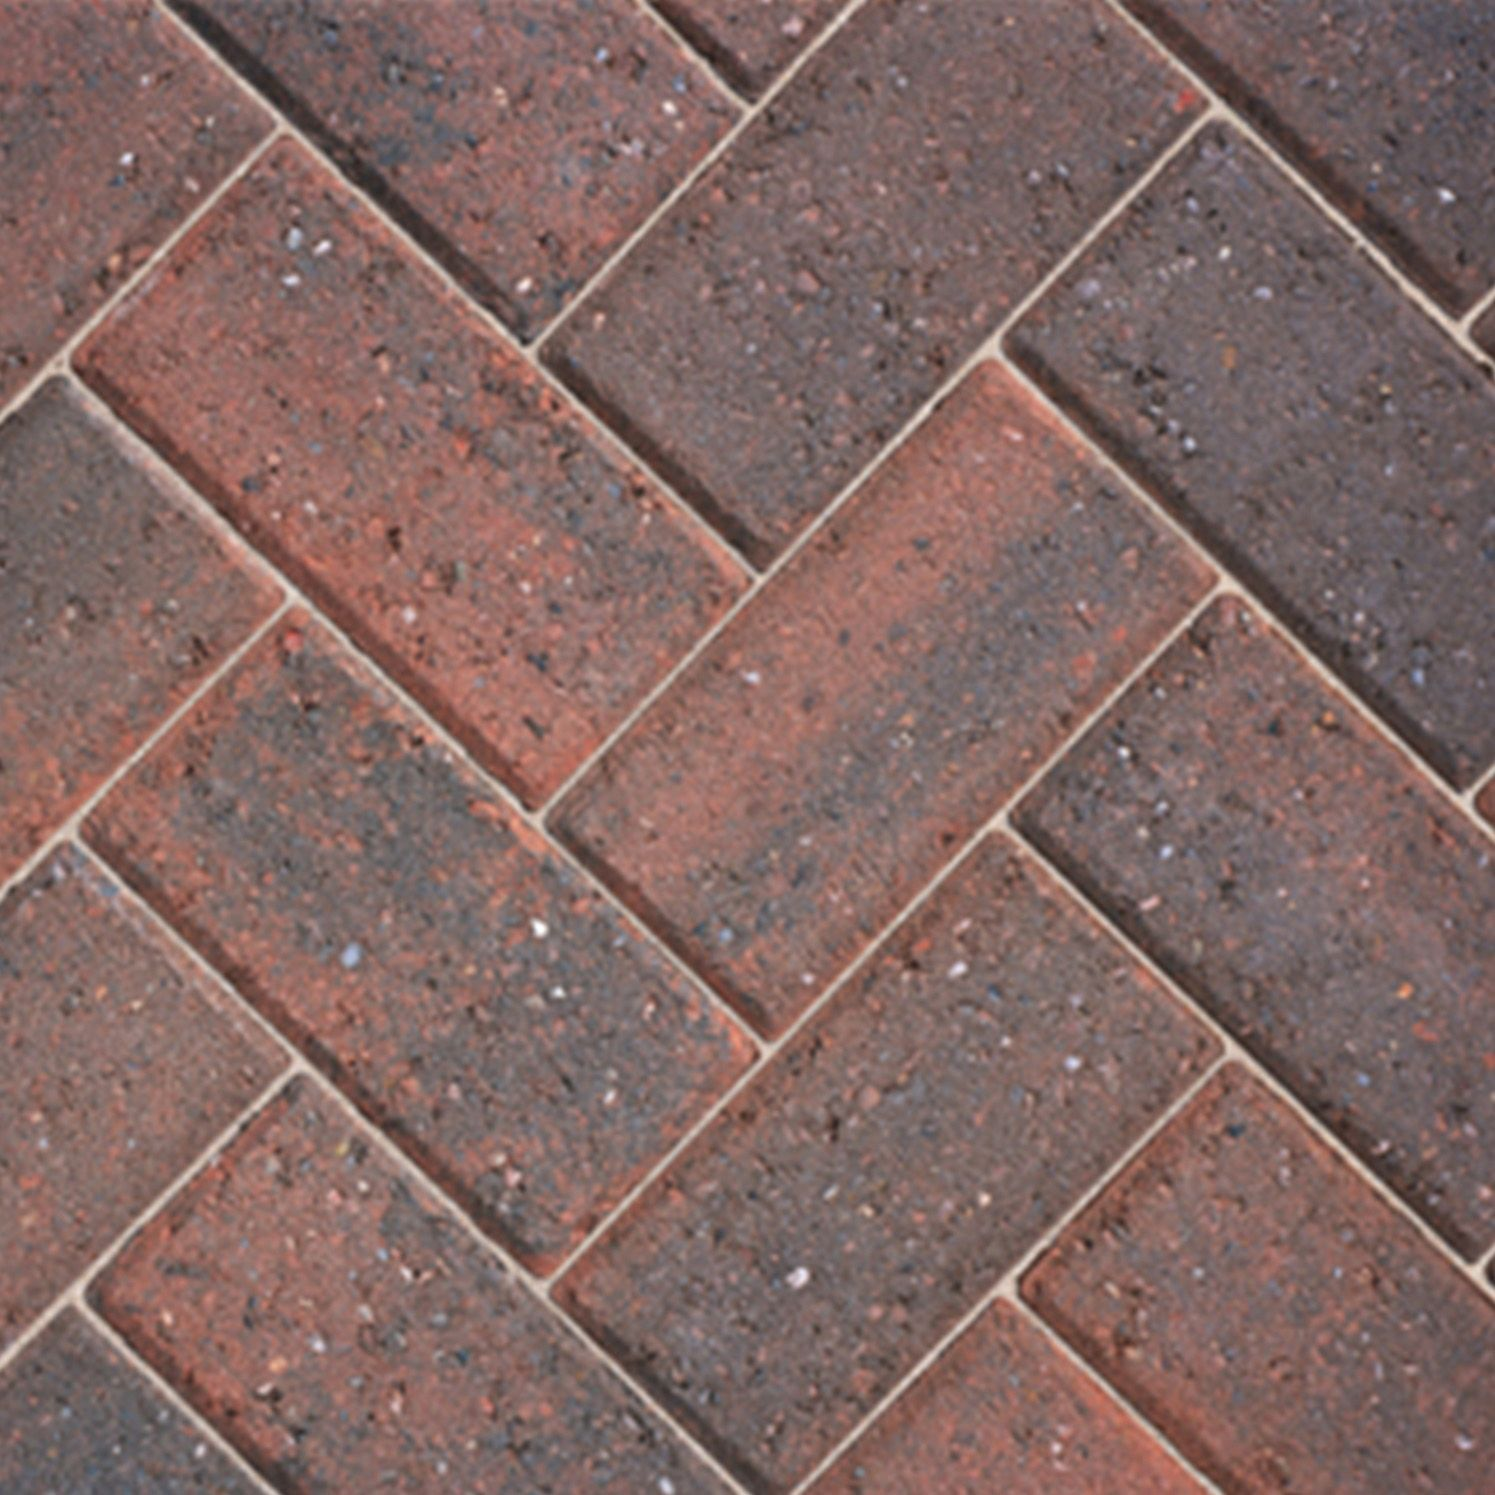 brindle europa block paving (l)200mm (w)100mm, pack of VRHKHWC